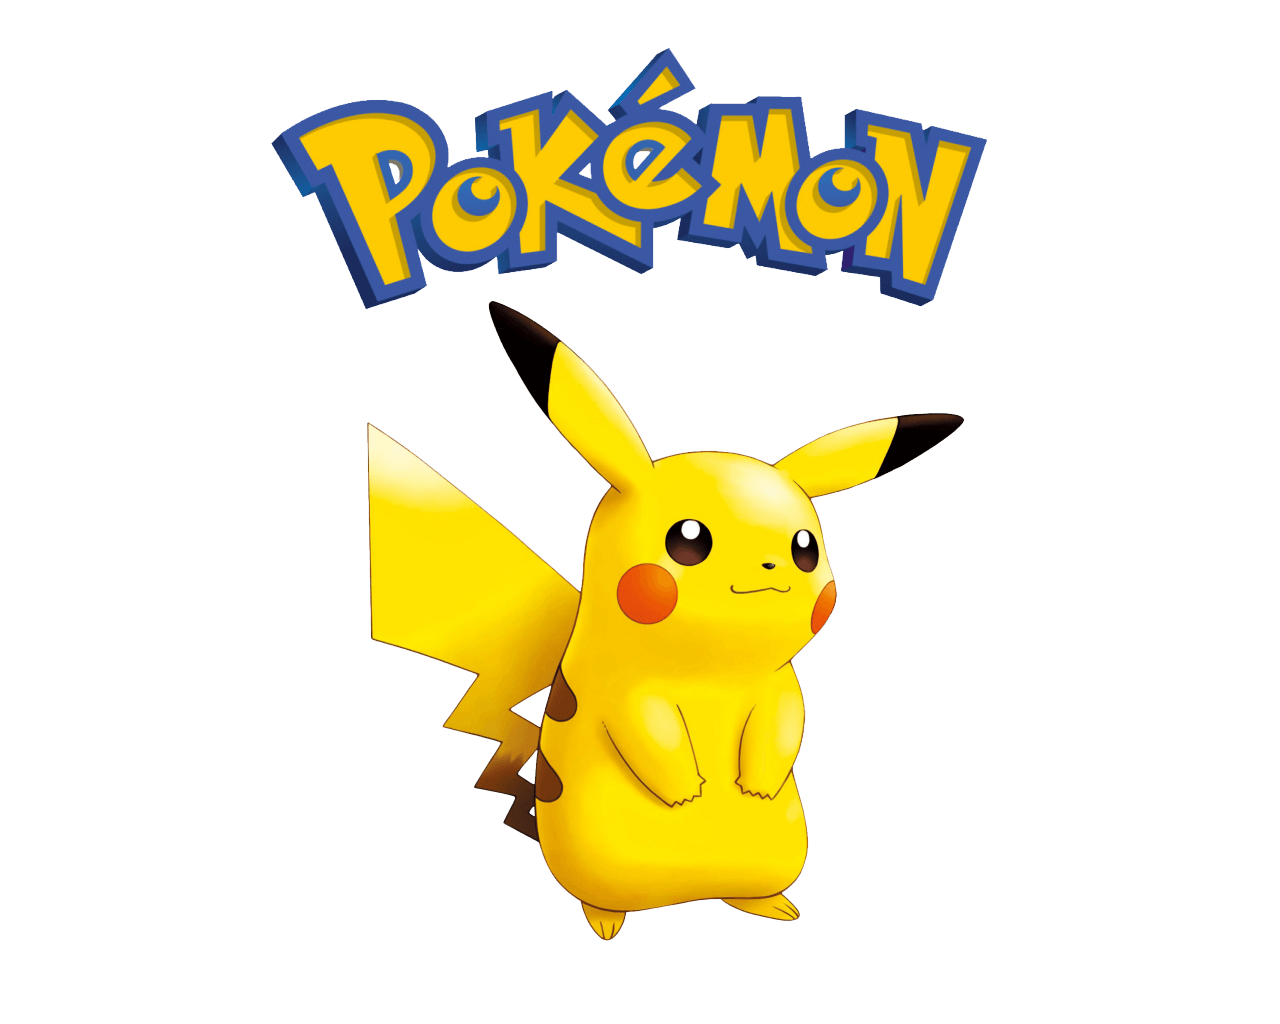 pikachu pokemon wallpaper - photo #12